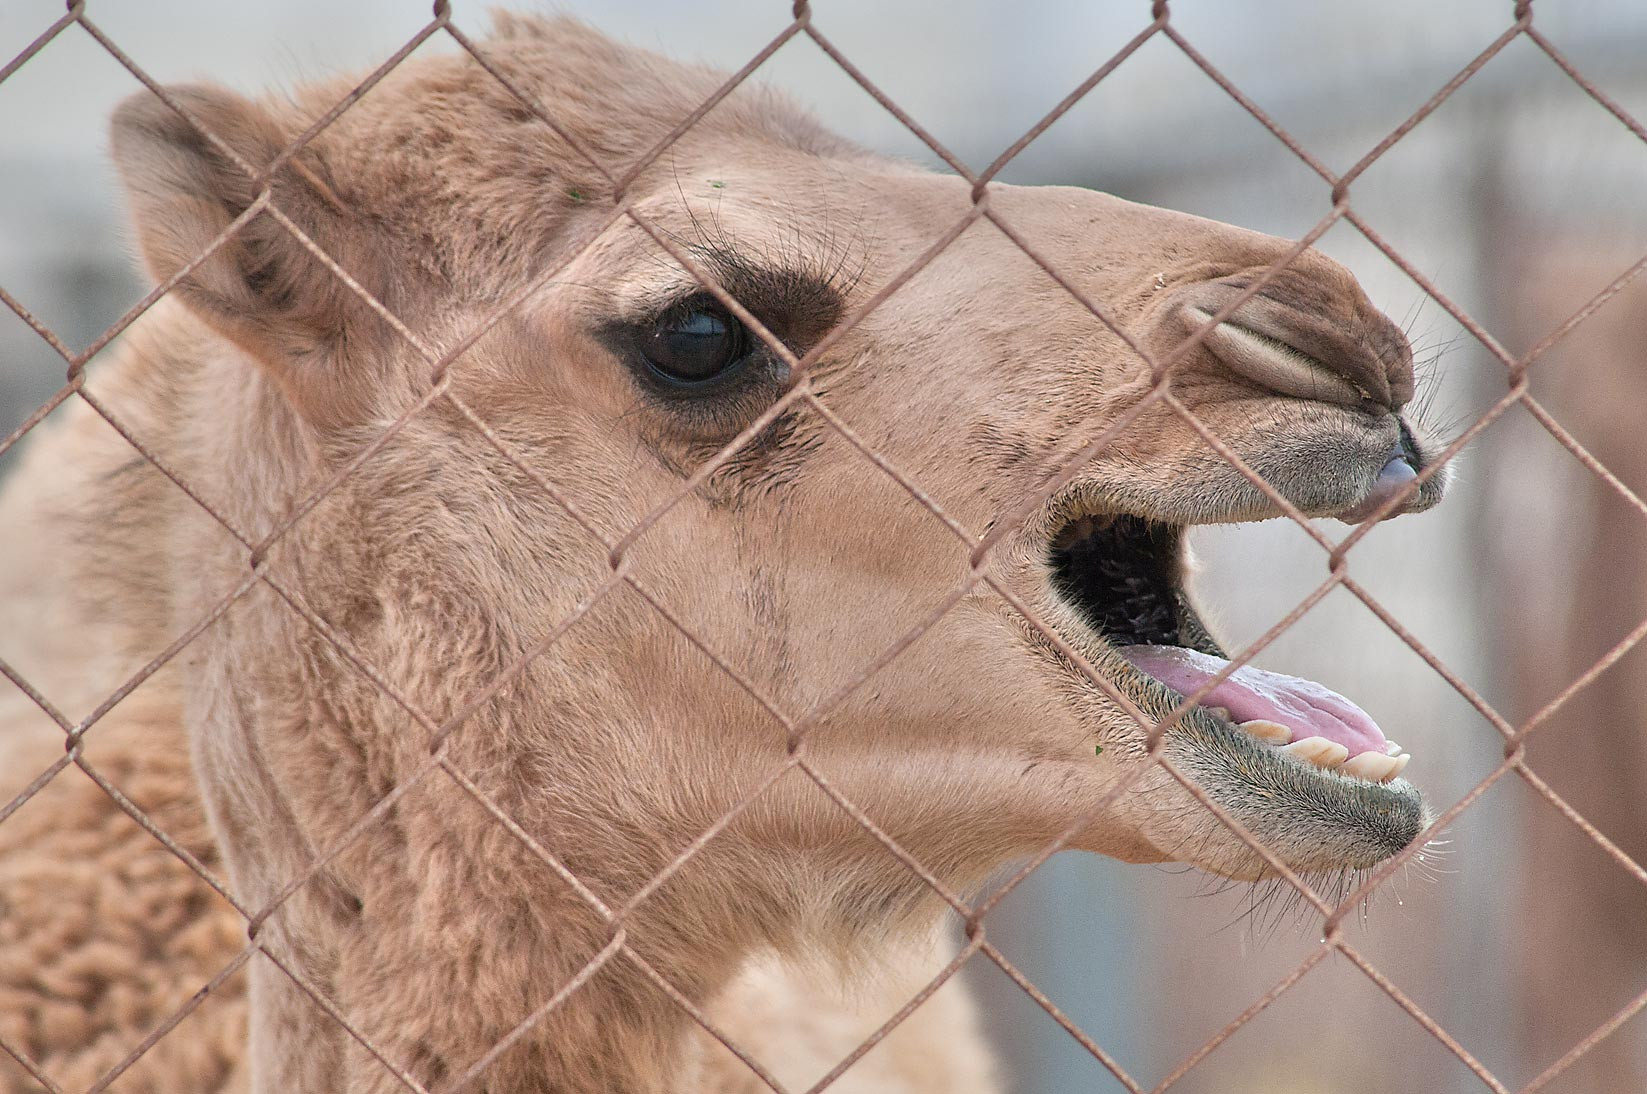 Crying camel in Camel Market, Wholesale Markets area. Doha, Qatar